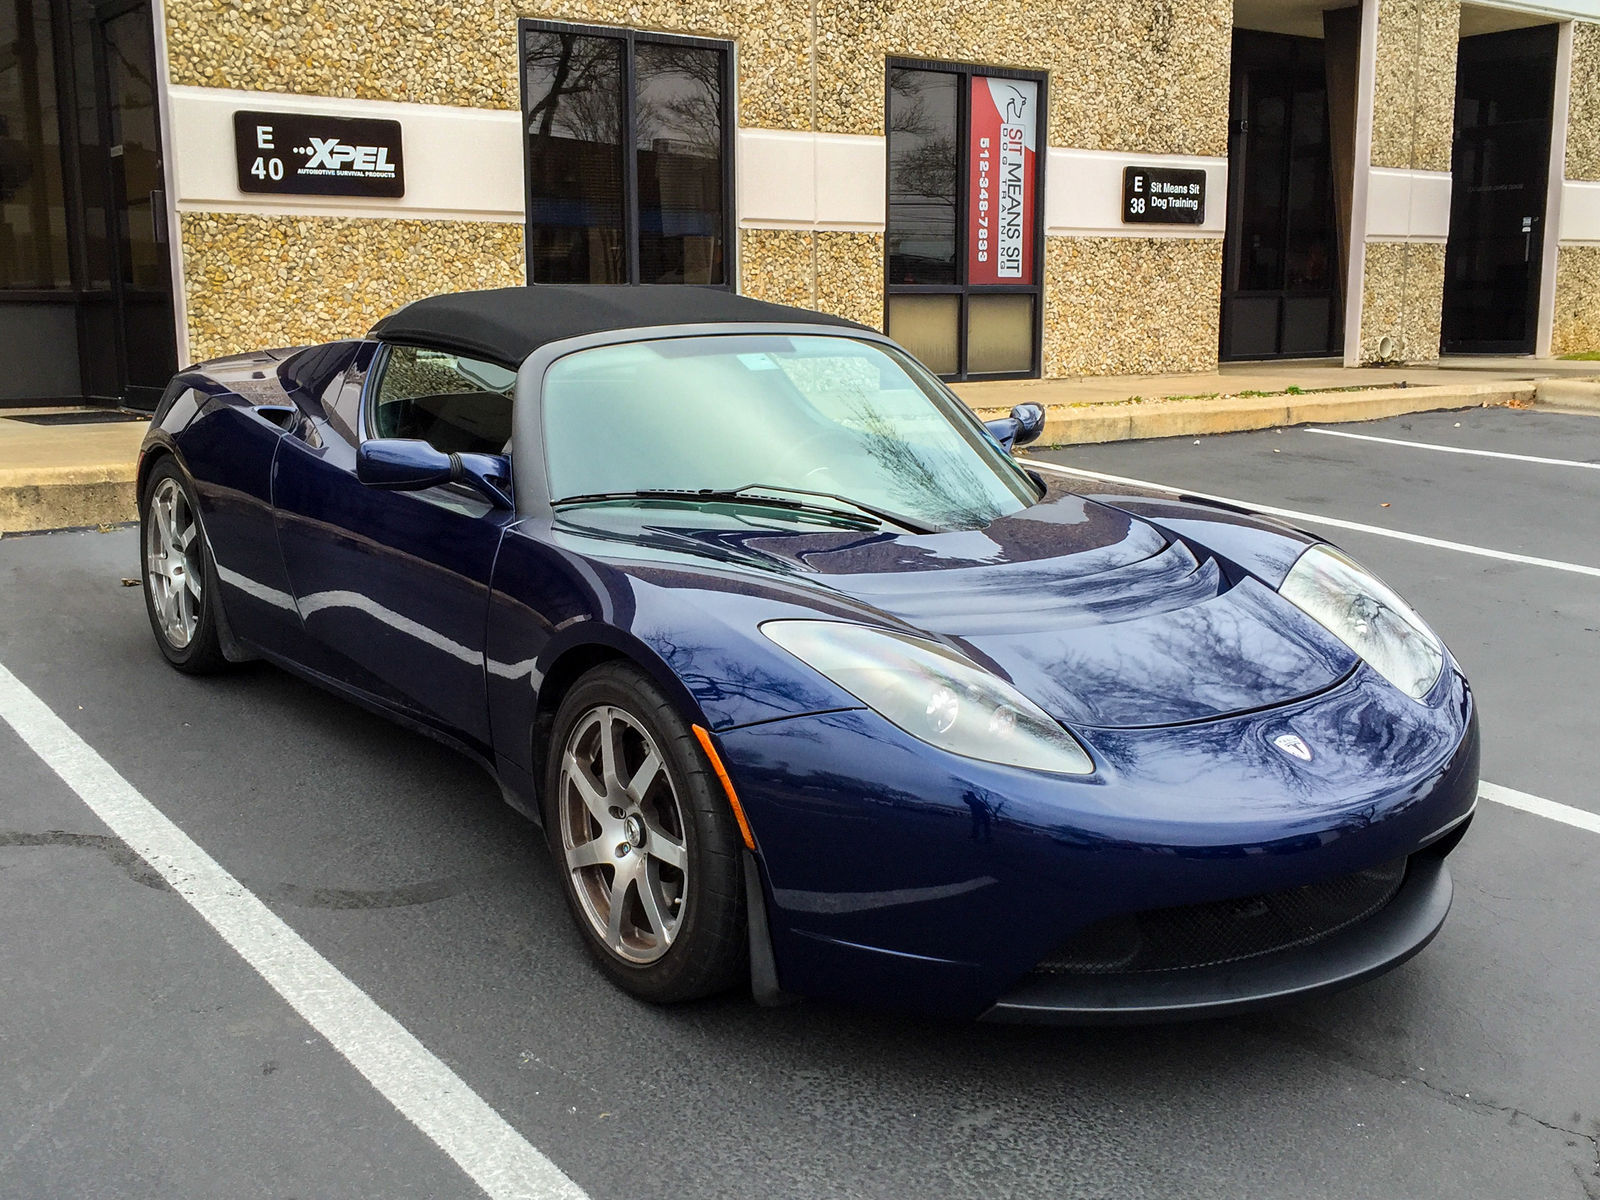 Tesla Roadster | XPEL Austin protecting this beautiful car with XPEL ULTIMATE